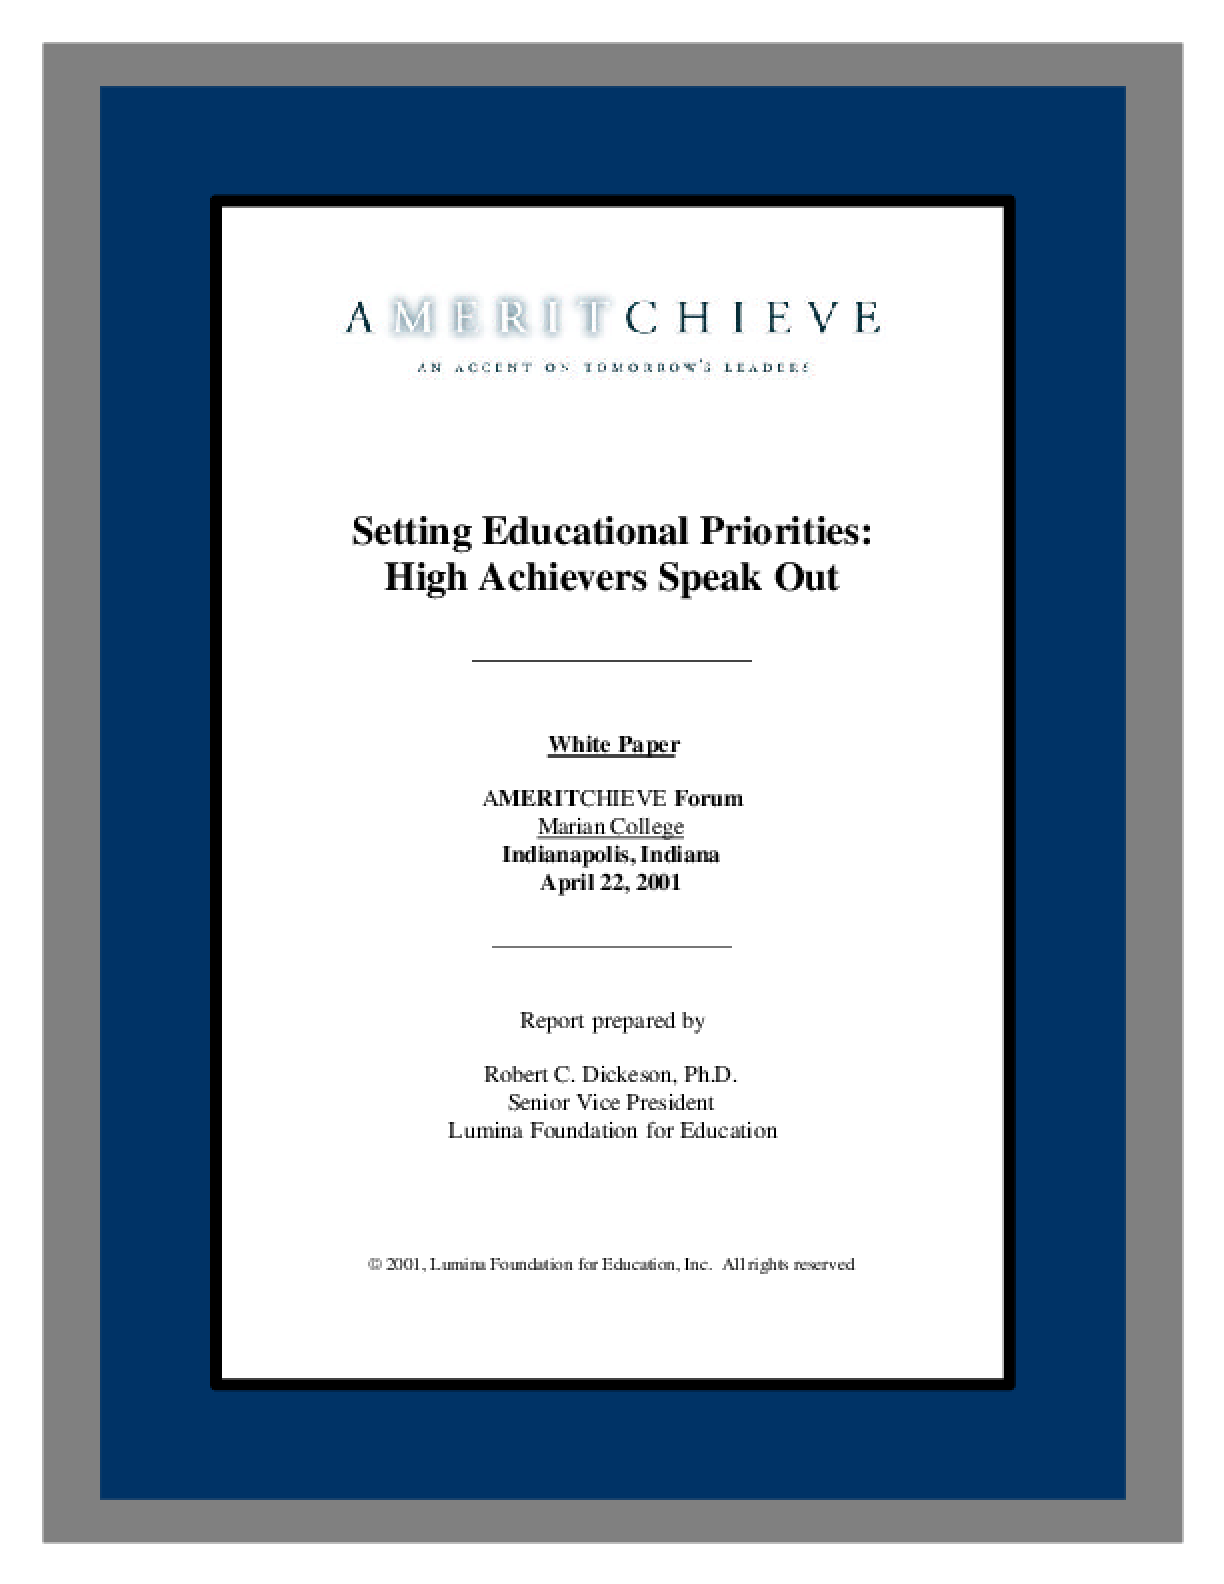 Setting Educational Priorities: High Achievers Speak Out